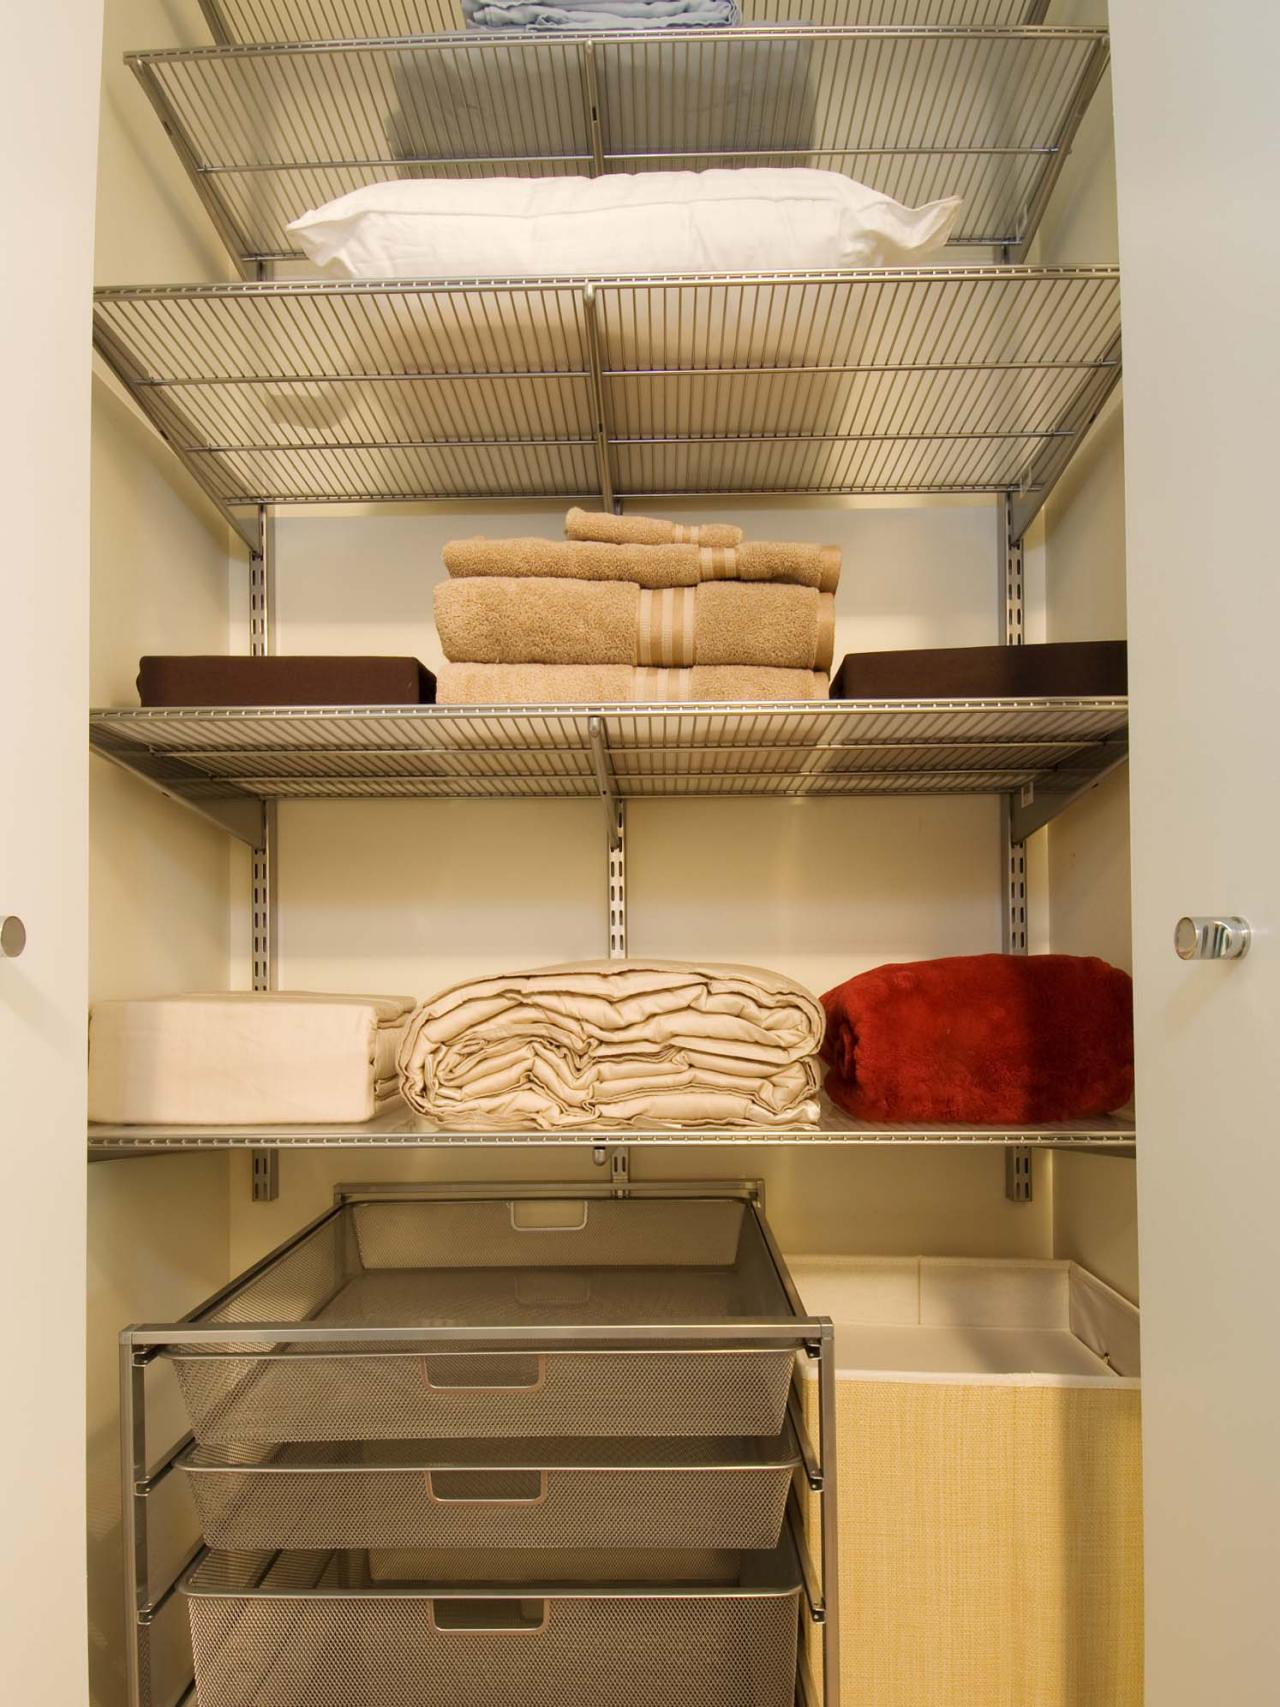 Linens Closet Storage With Various Type Shelves Linens Kinds Such As  Pillow, Blanket, Bed